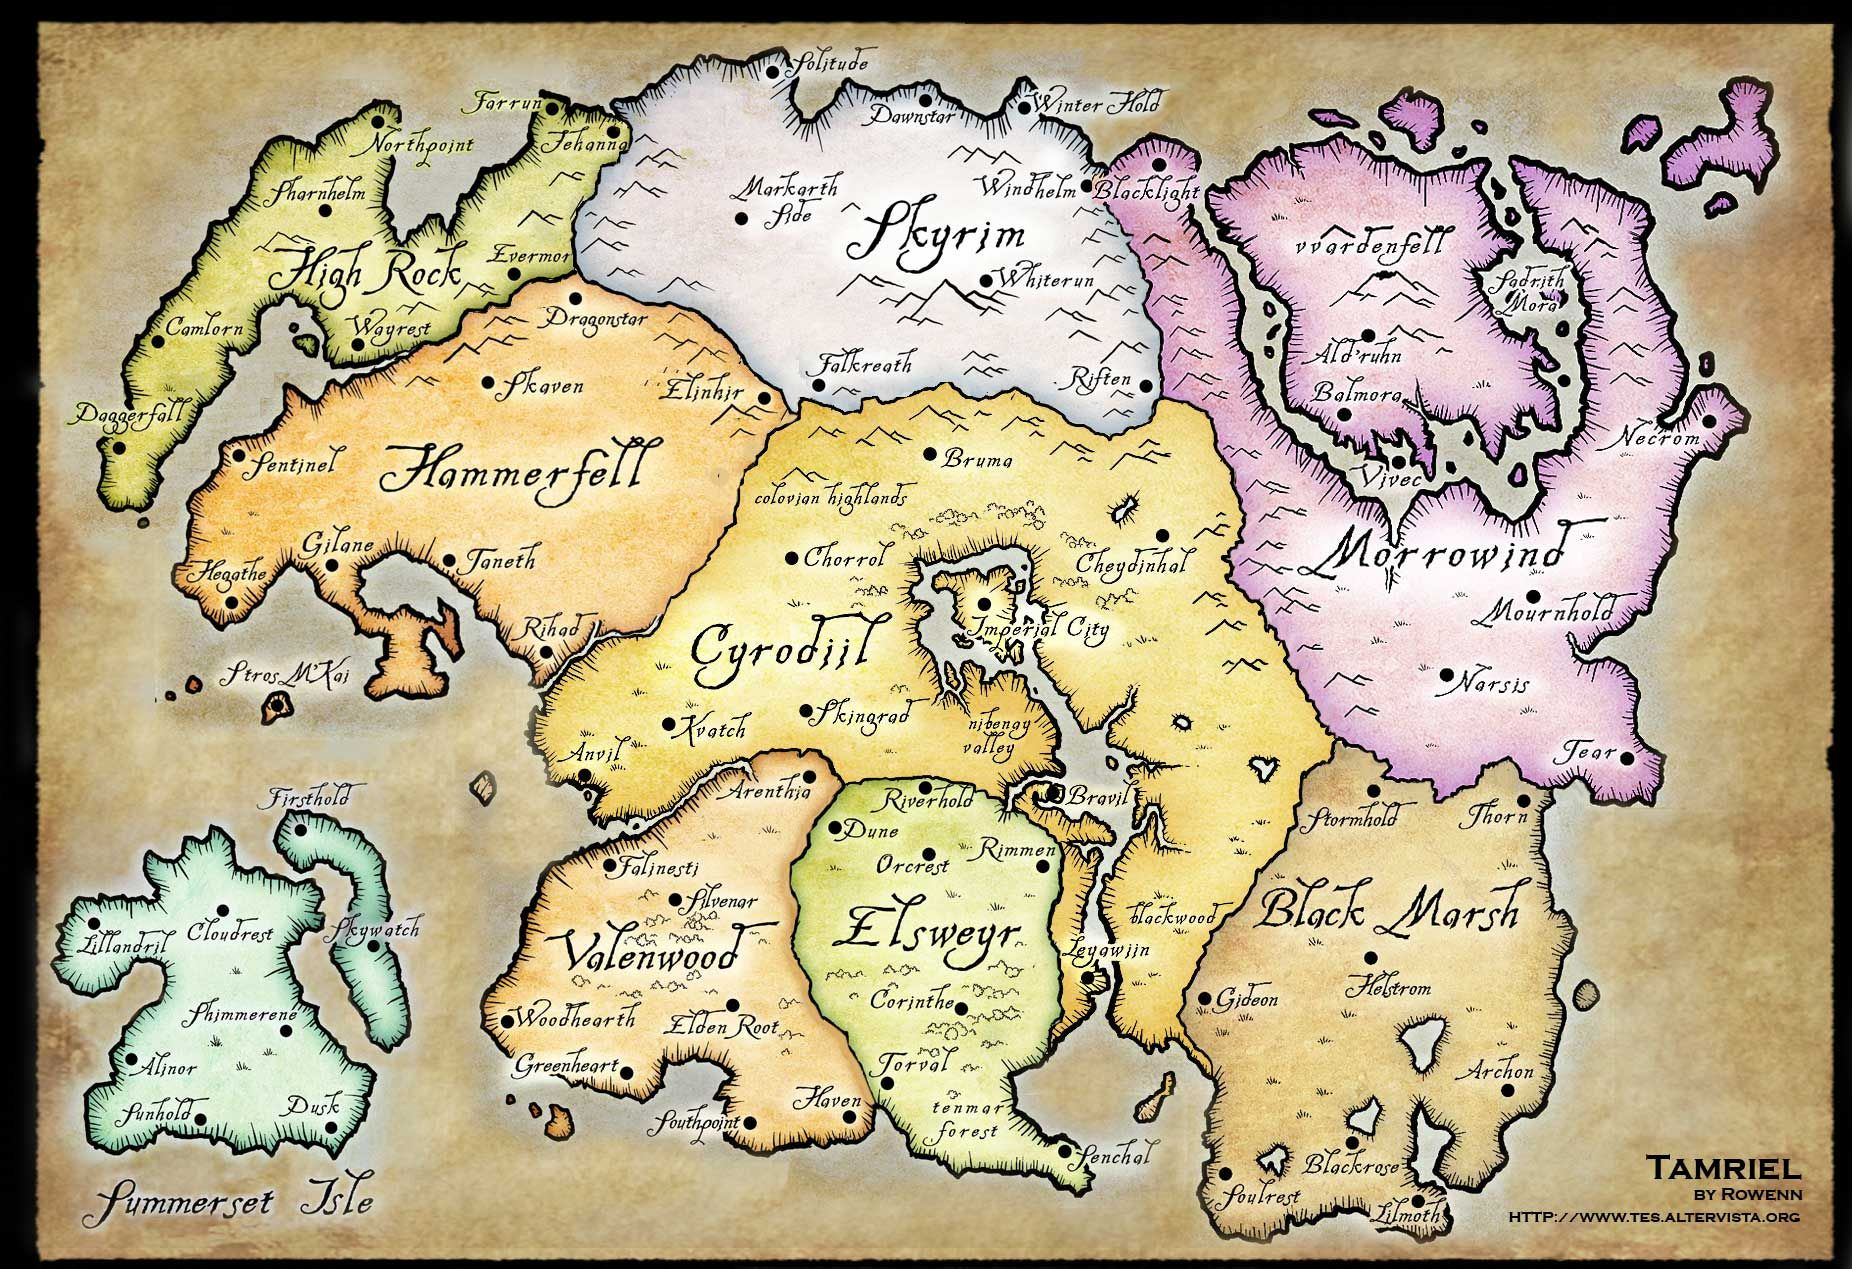 Elder scrolls tamriel world map unreal maps pinterest elder scrolls tamriel world map gumiabroncs Choice Image